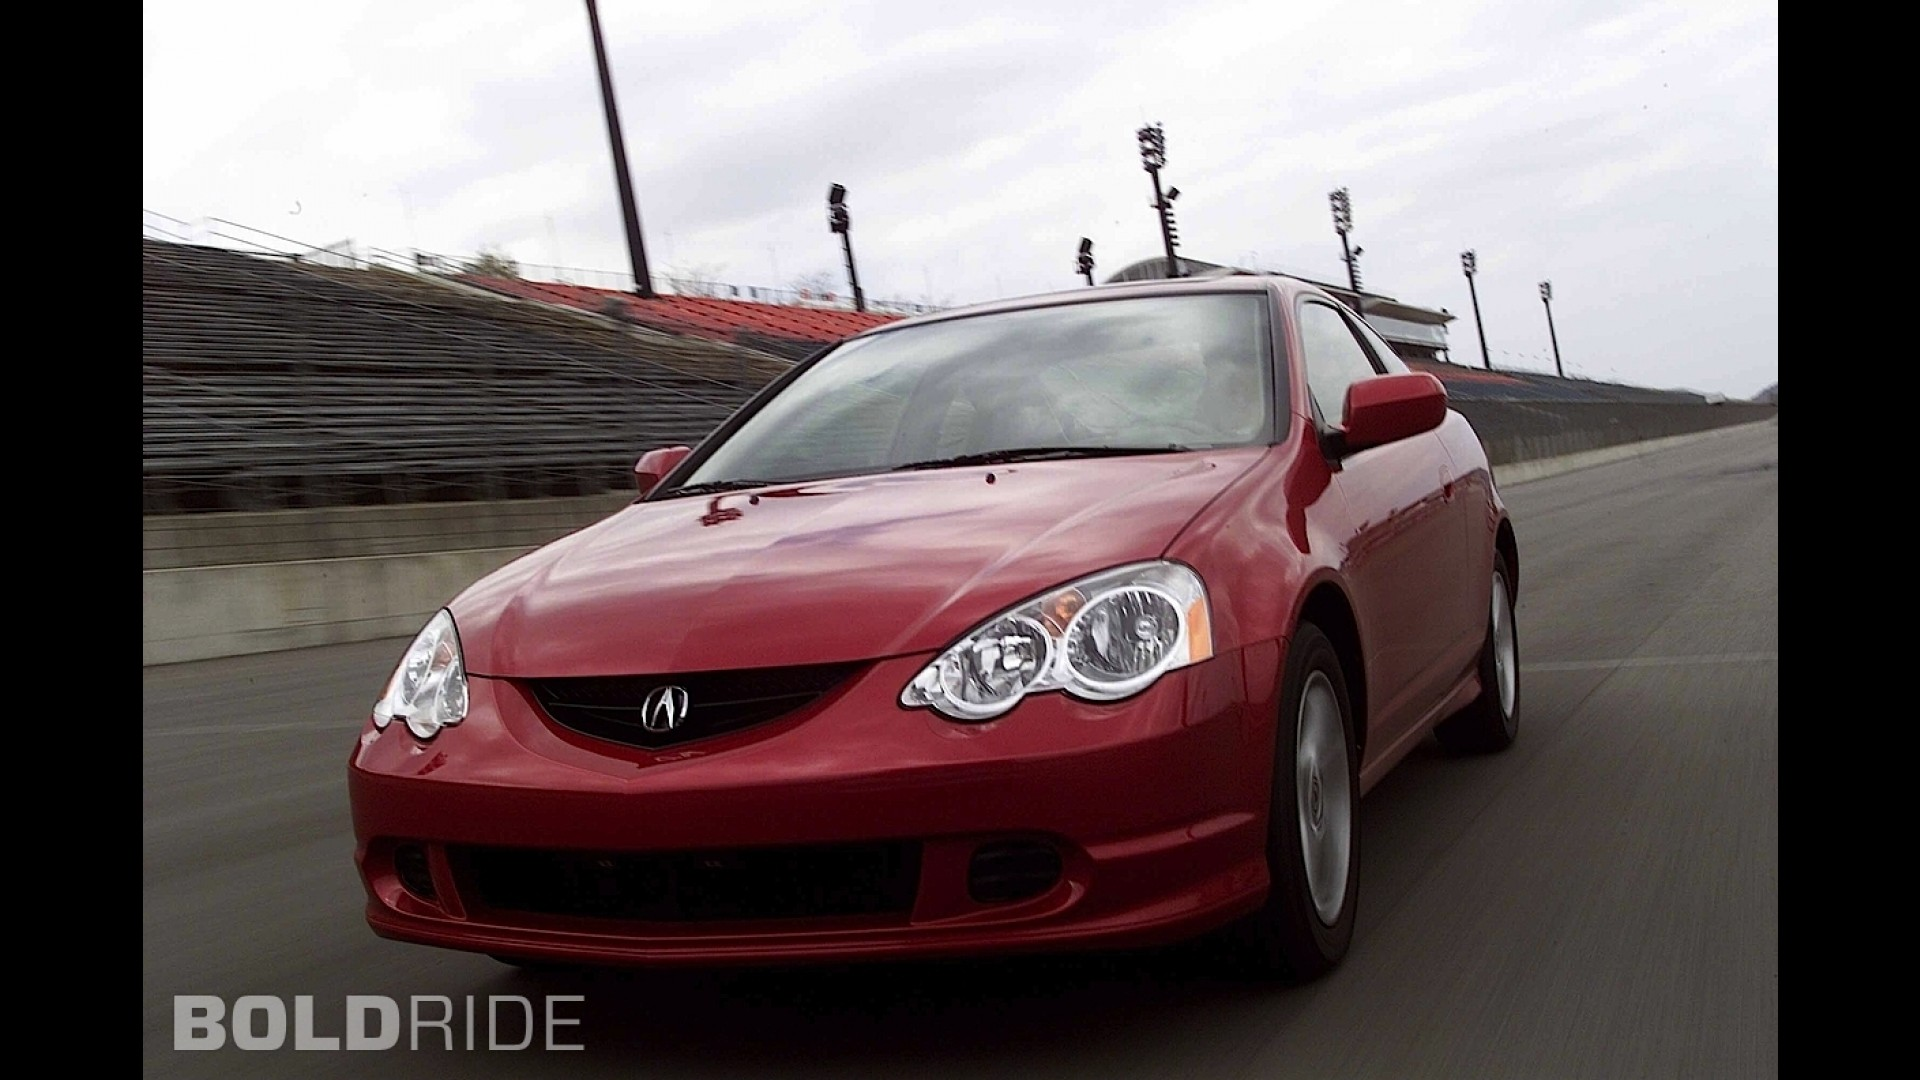 cars rsx sale type mn acura copart s for at fridley lot